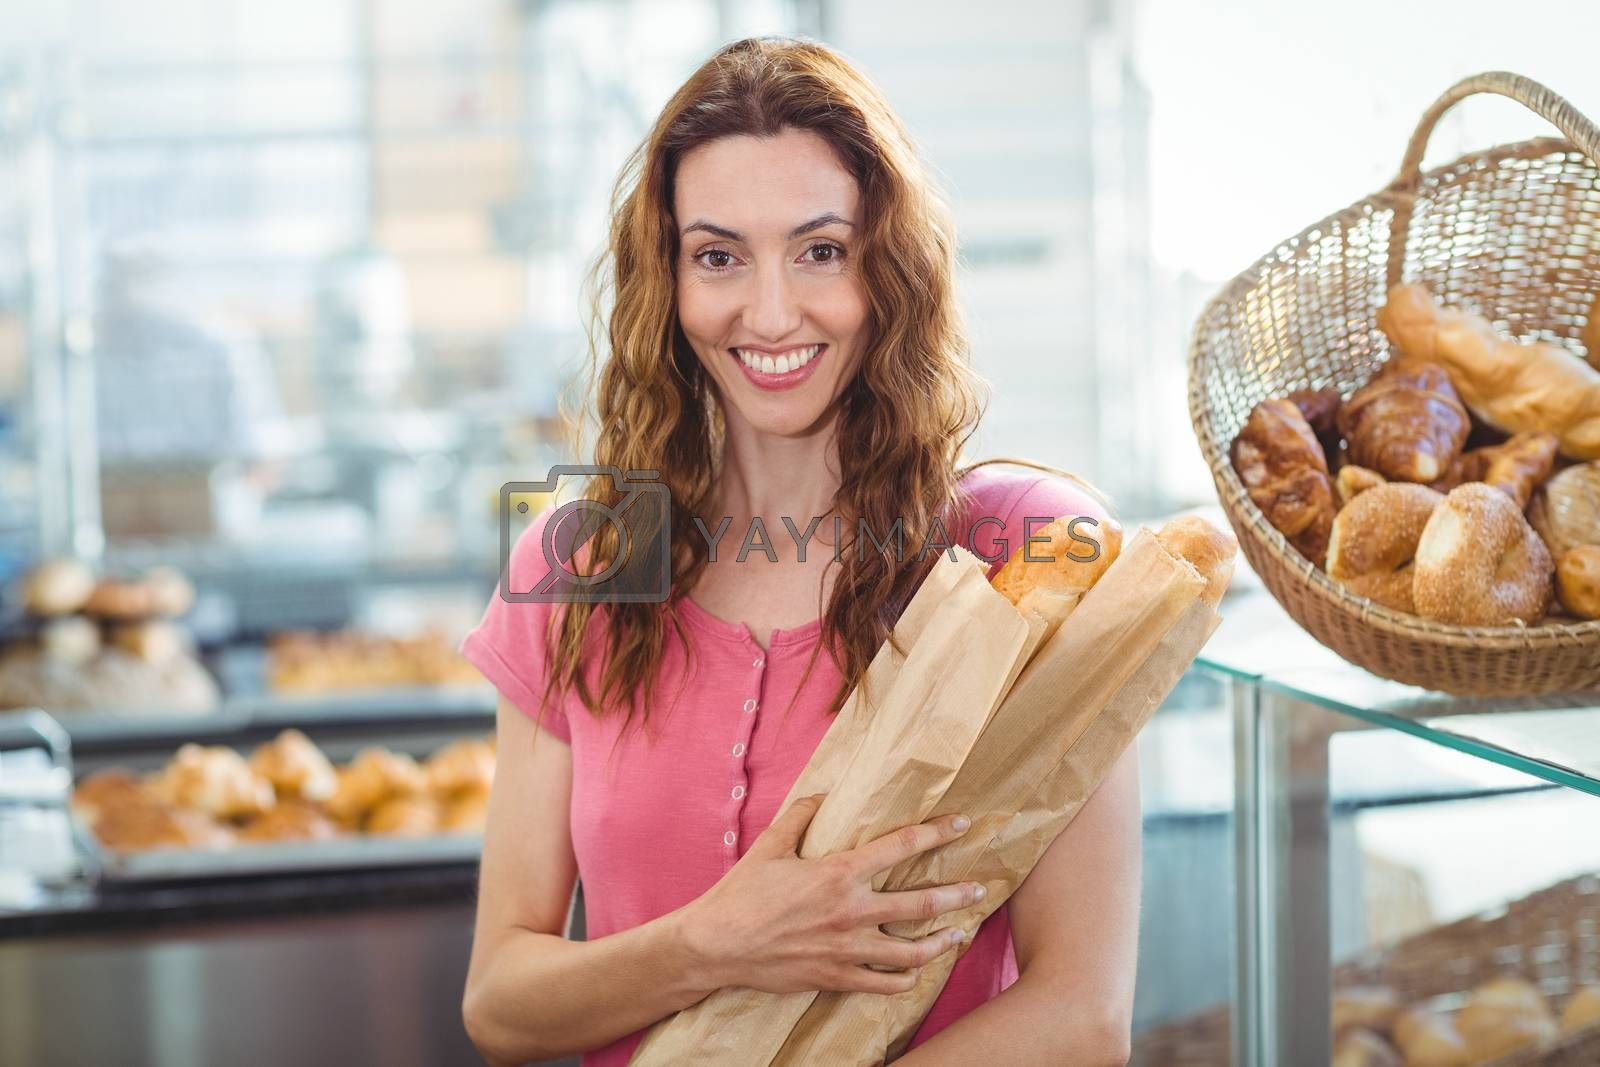 Royalty free image of Smiling young brunette with baguettes by Wavebreakmedia